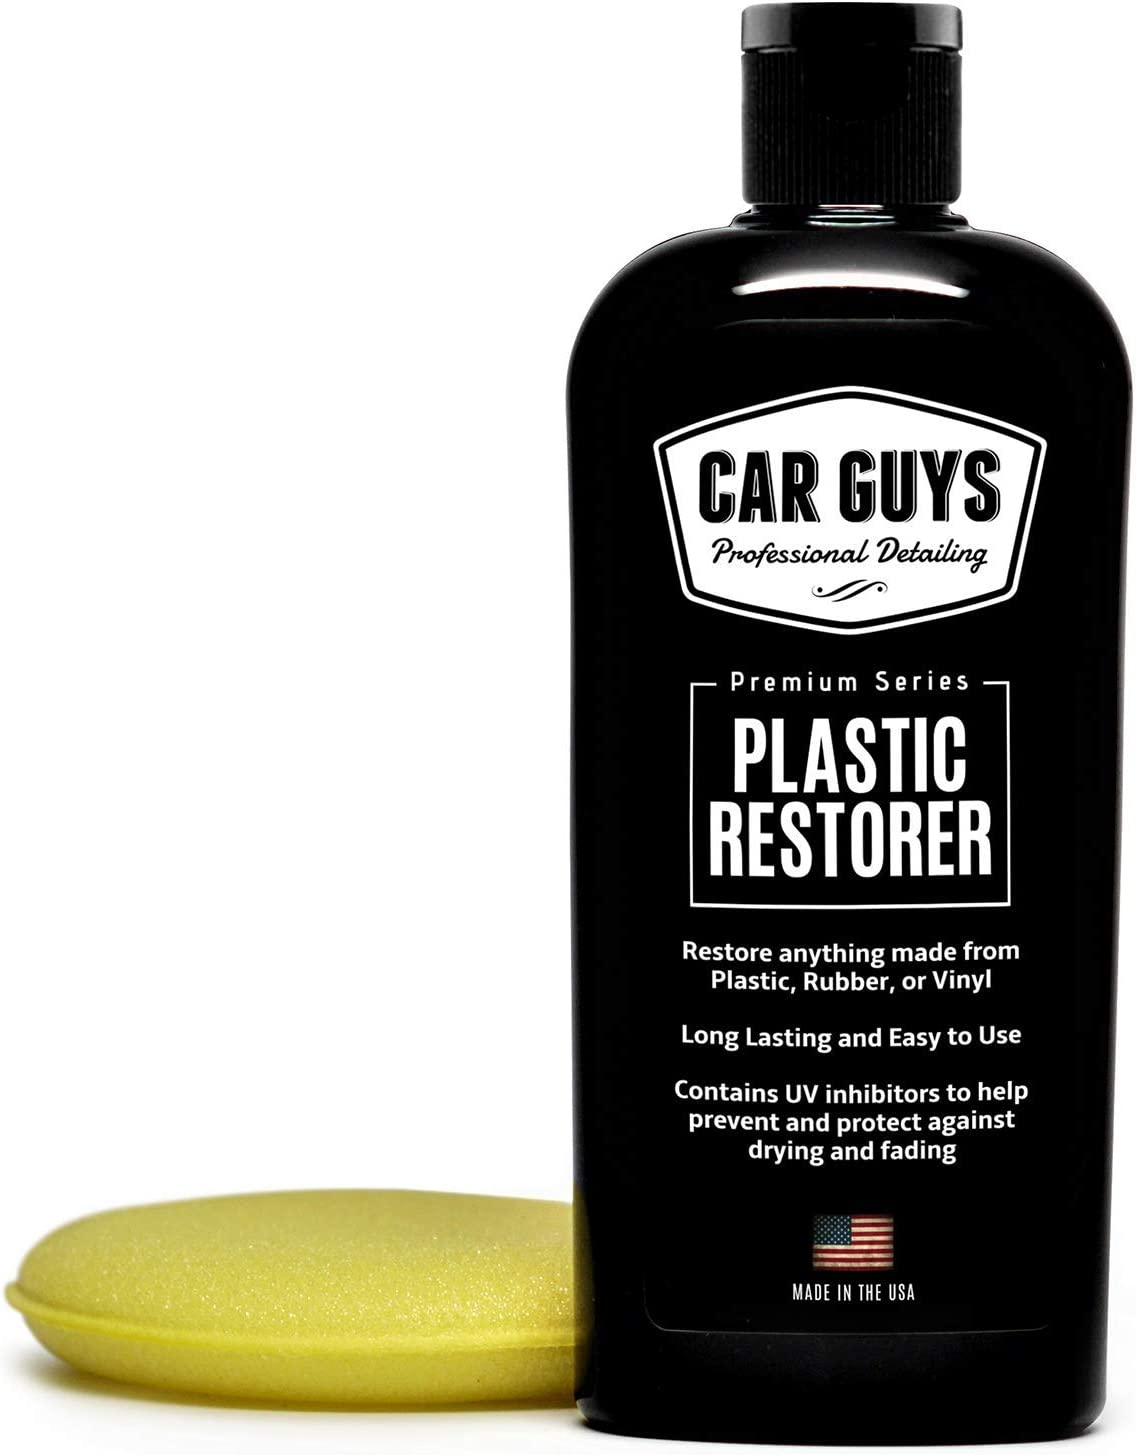 CAR GUYS Plastic Restorer - Discount is also underway The Solution Ultimate for R Ranking TOP2 Bringing